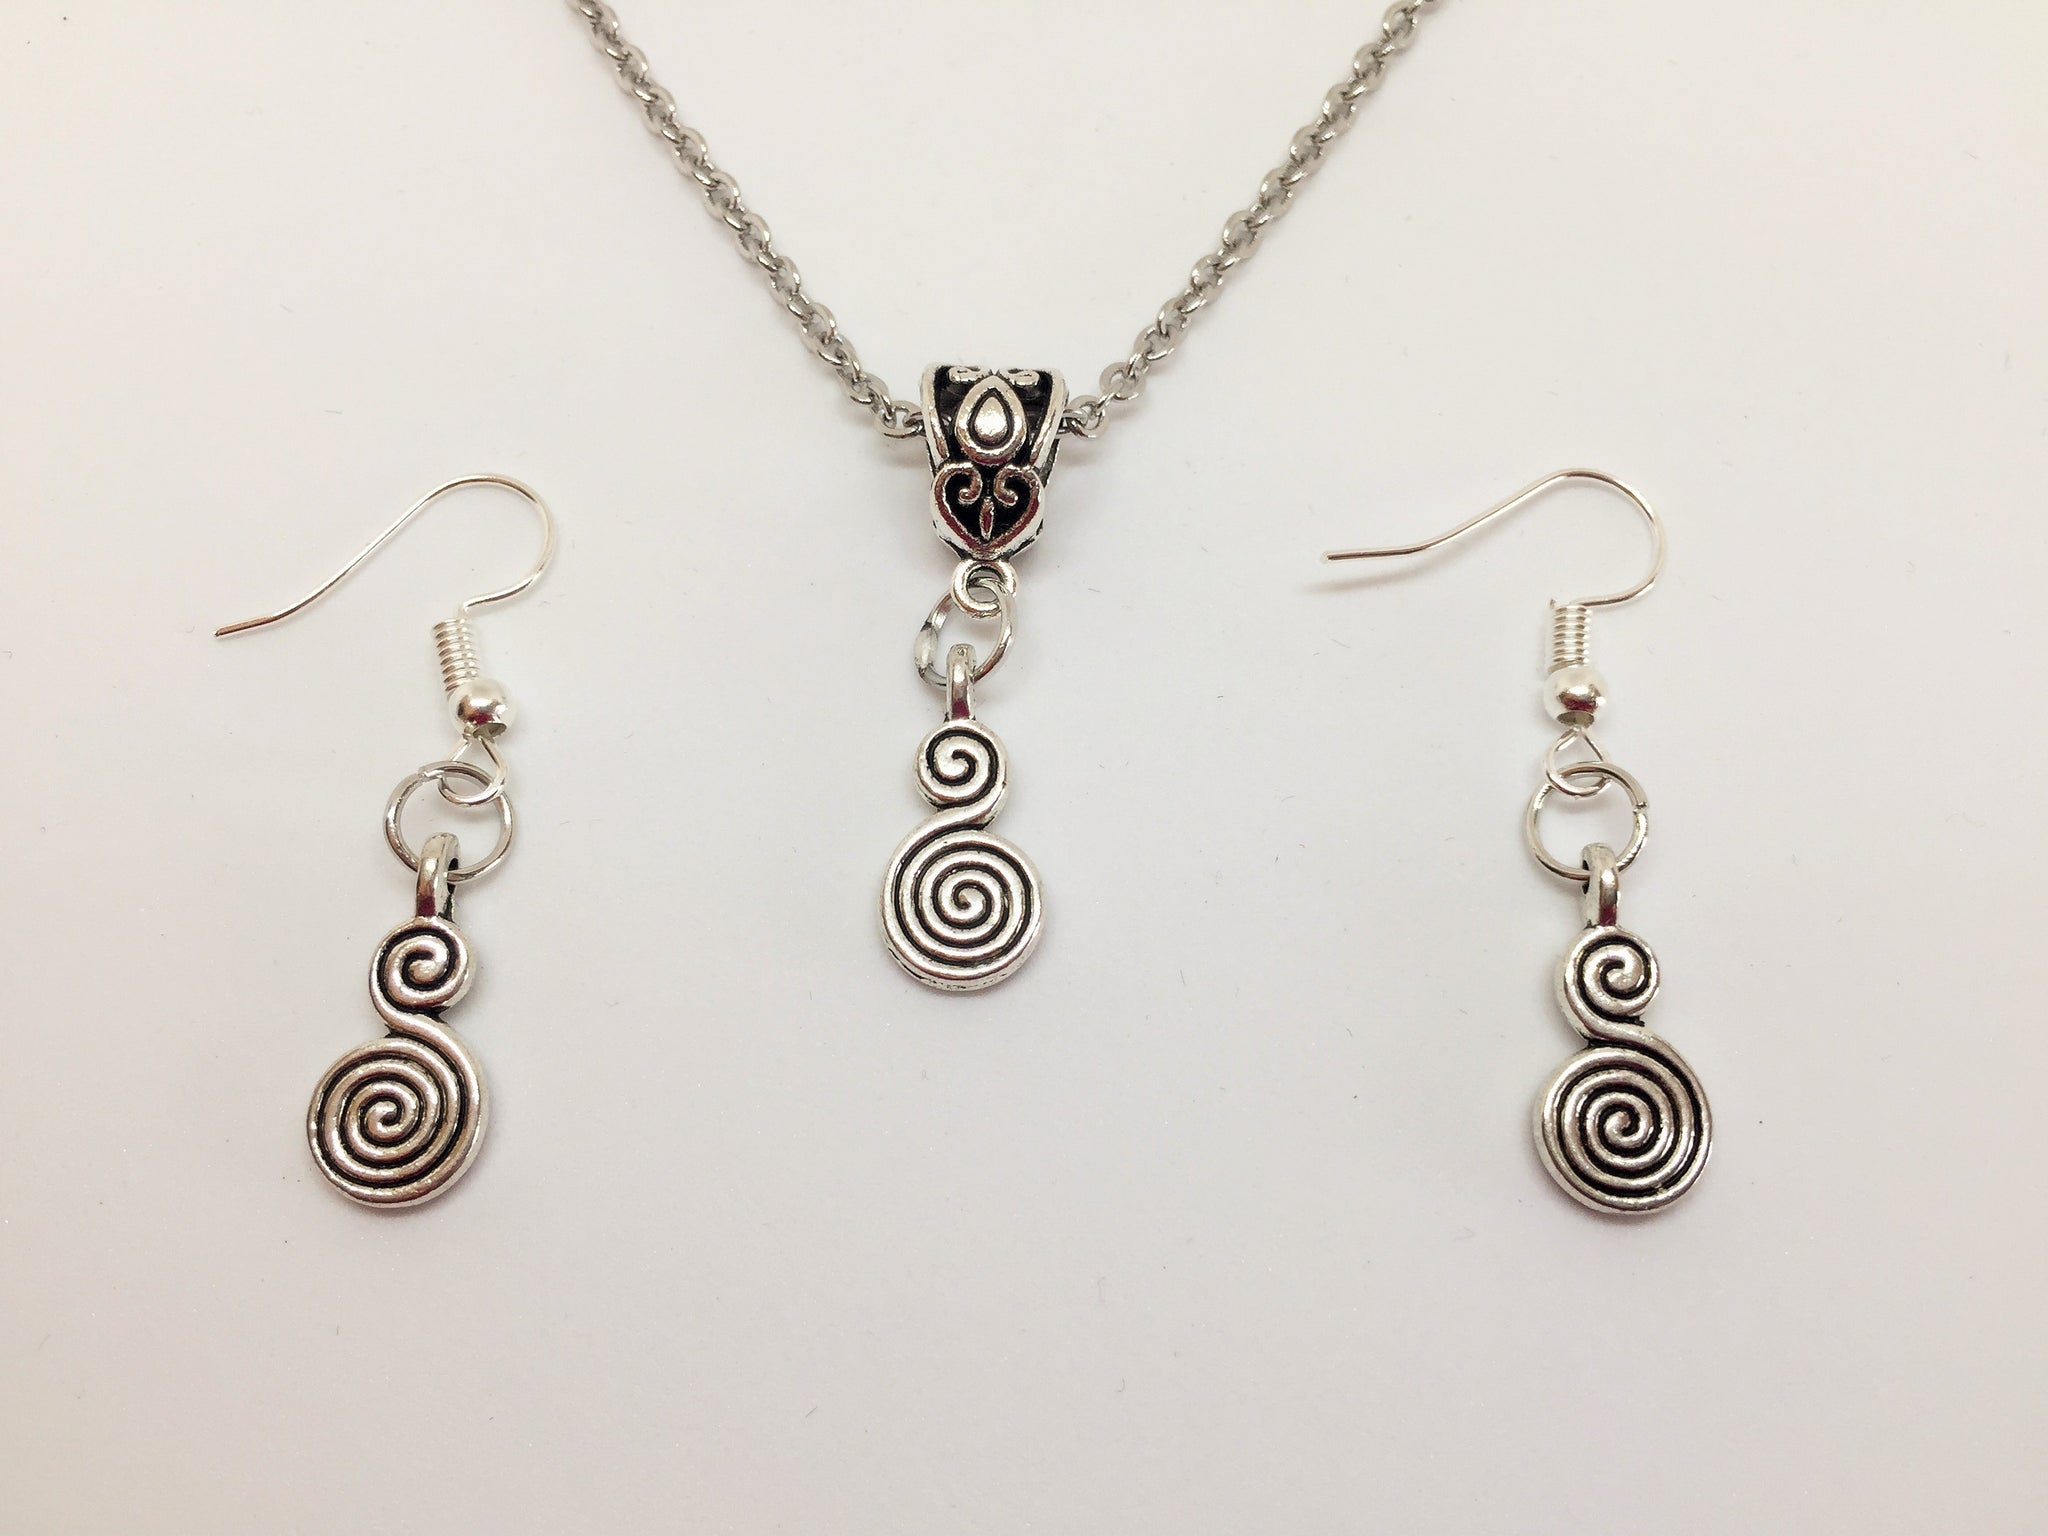 Wicca Goddess Pendant & Earring Set